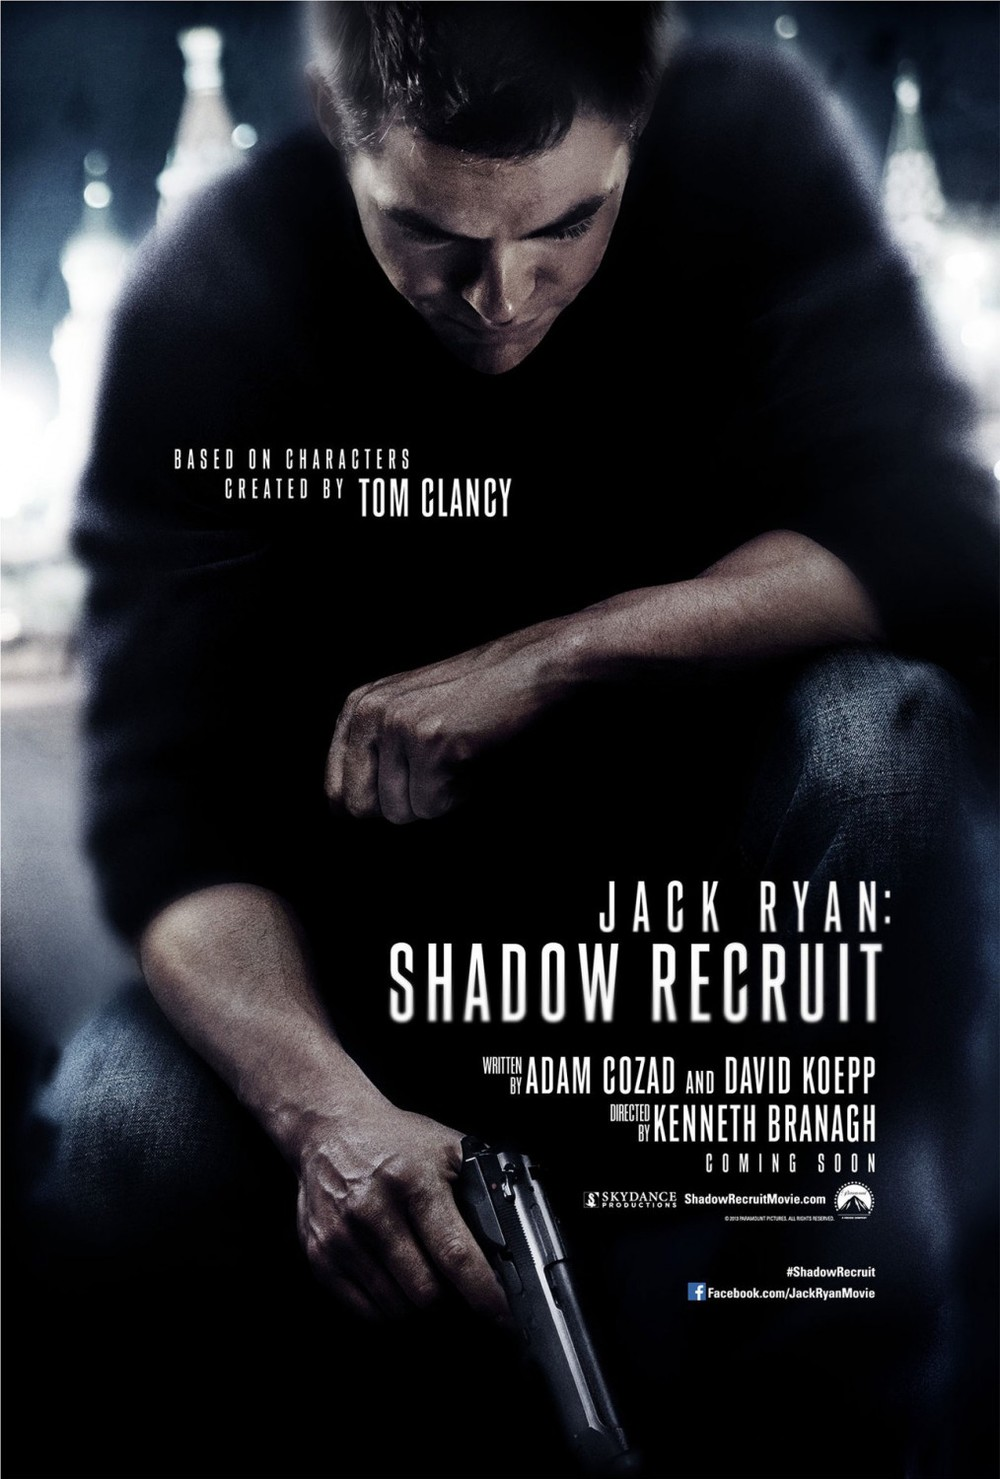 JACK-RYAN-SHADOW-RECRUIT-Poster-001.jpg